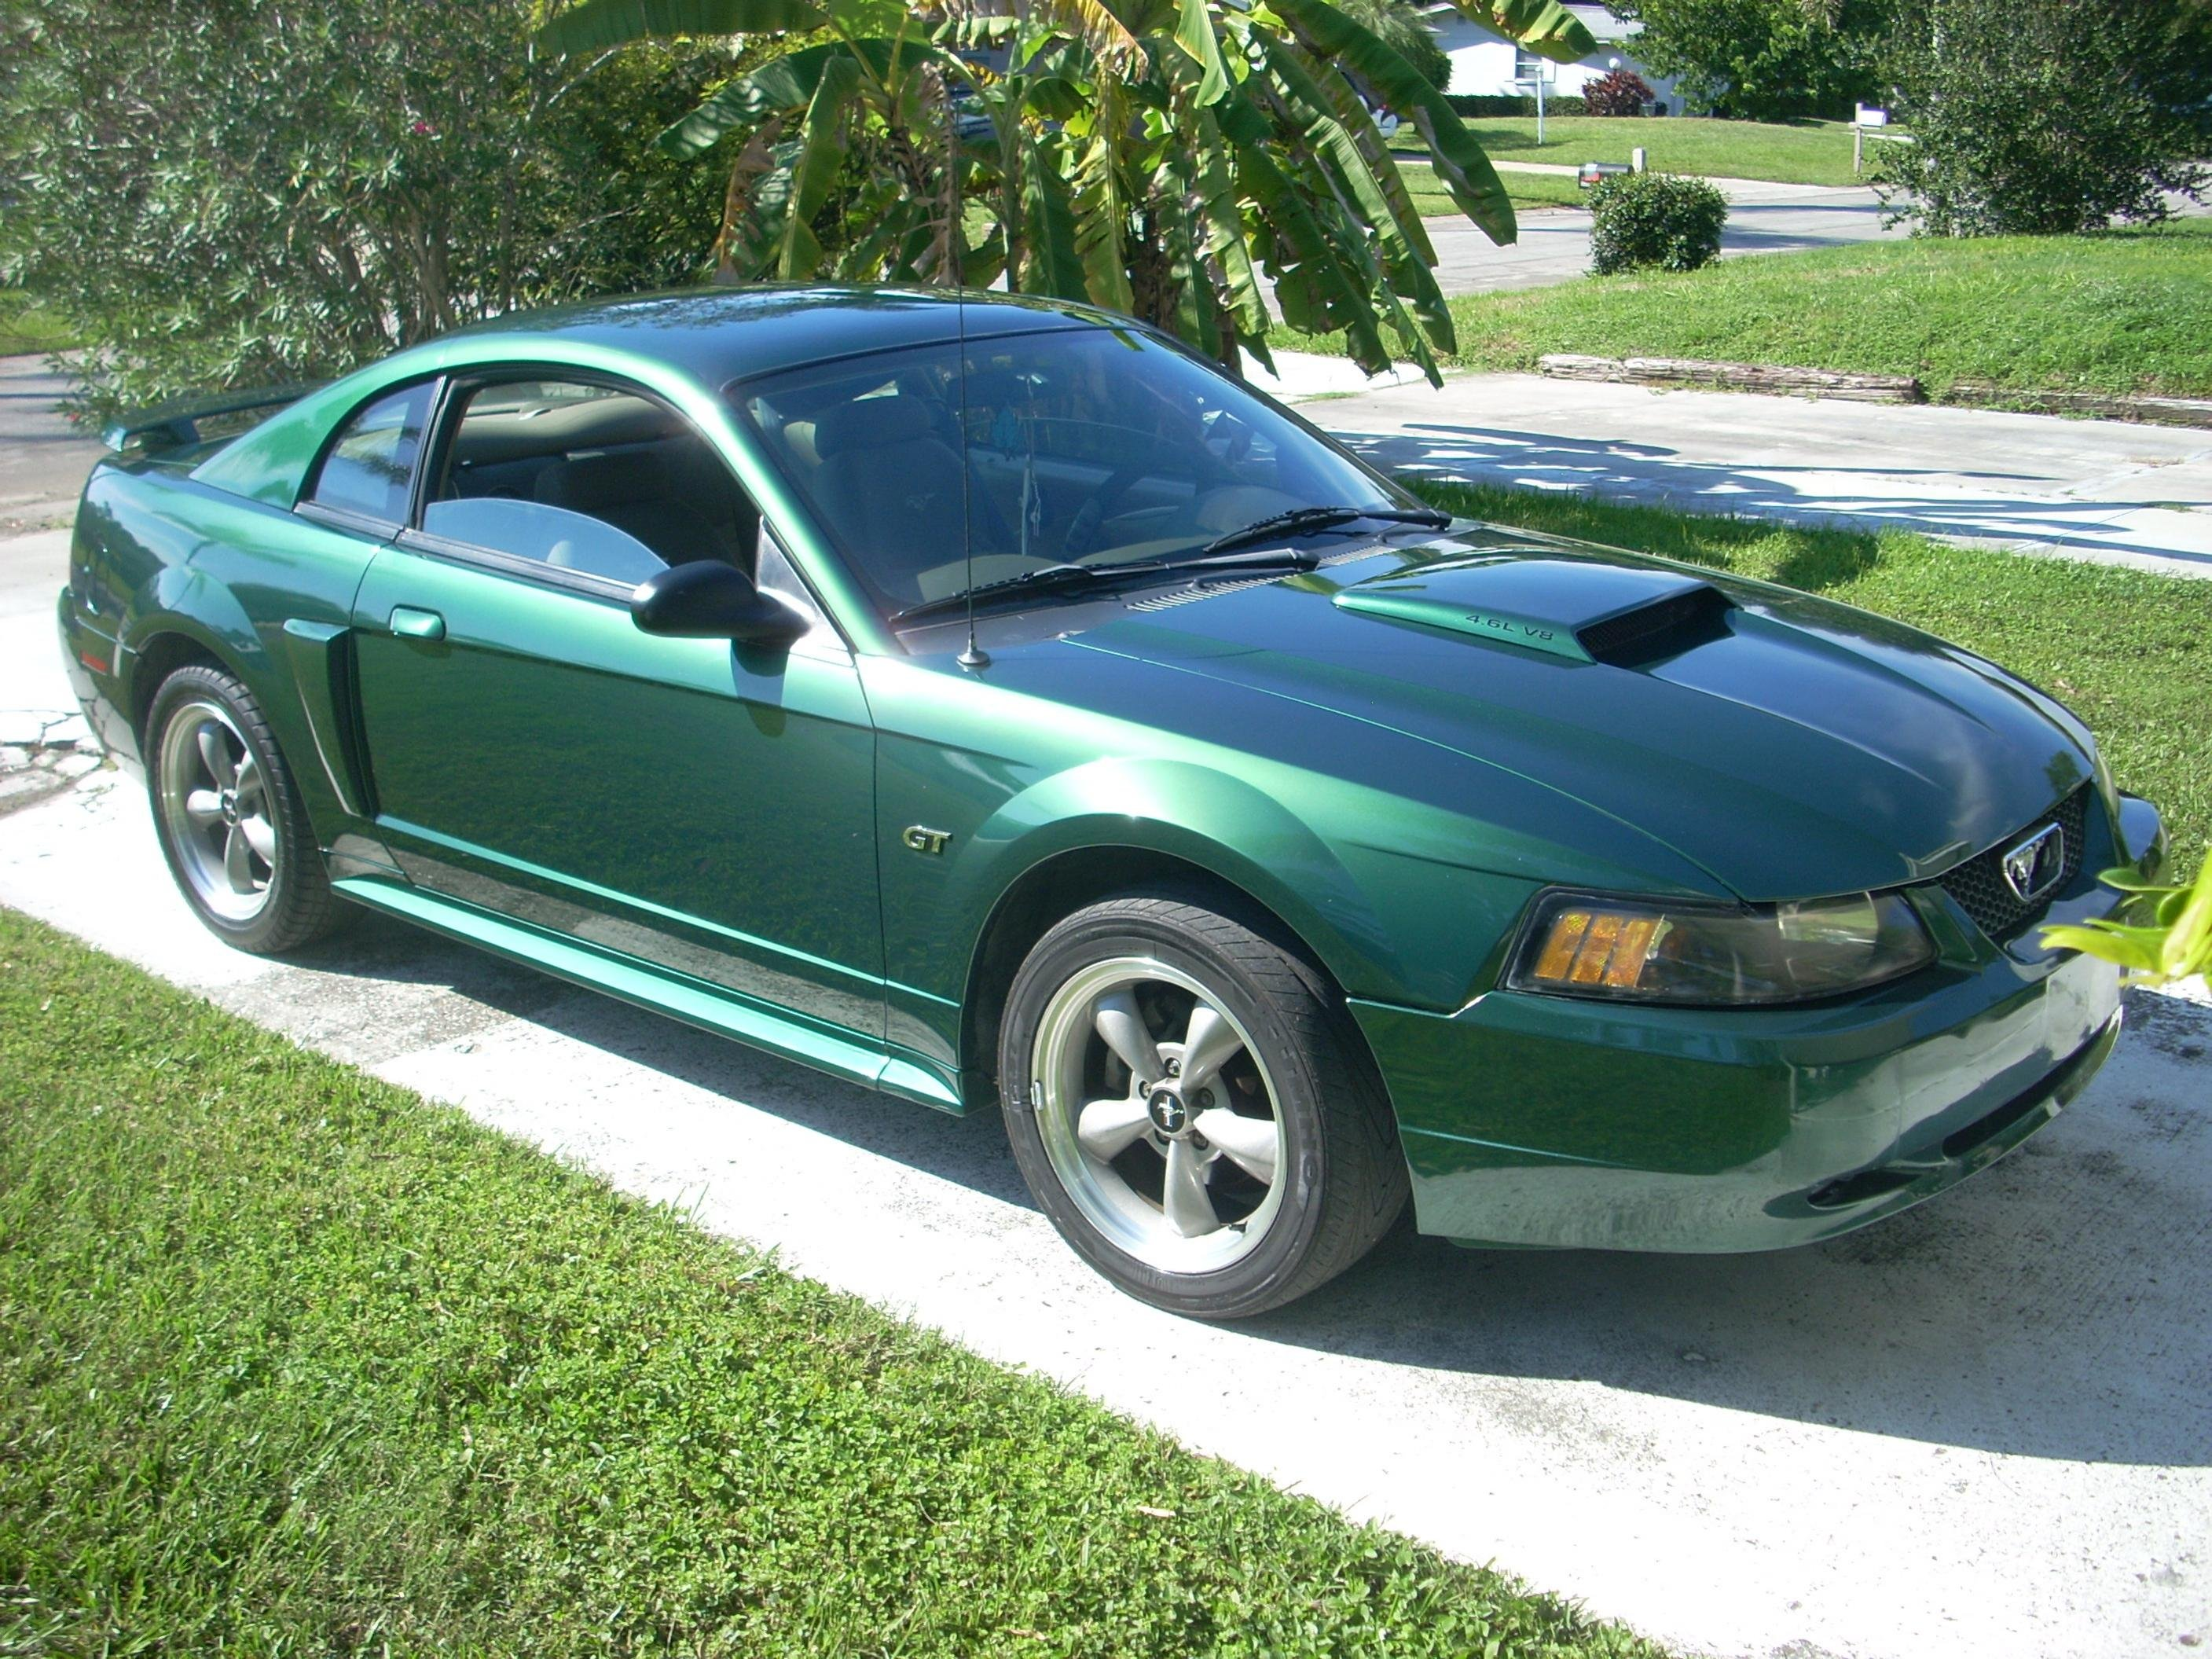 nice and shiny 2001 mustang gt ford mustang forum. Black Bedroom Furniture Sets. Home Design Ideas